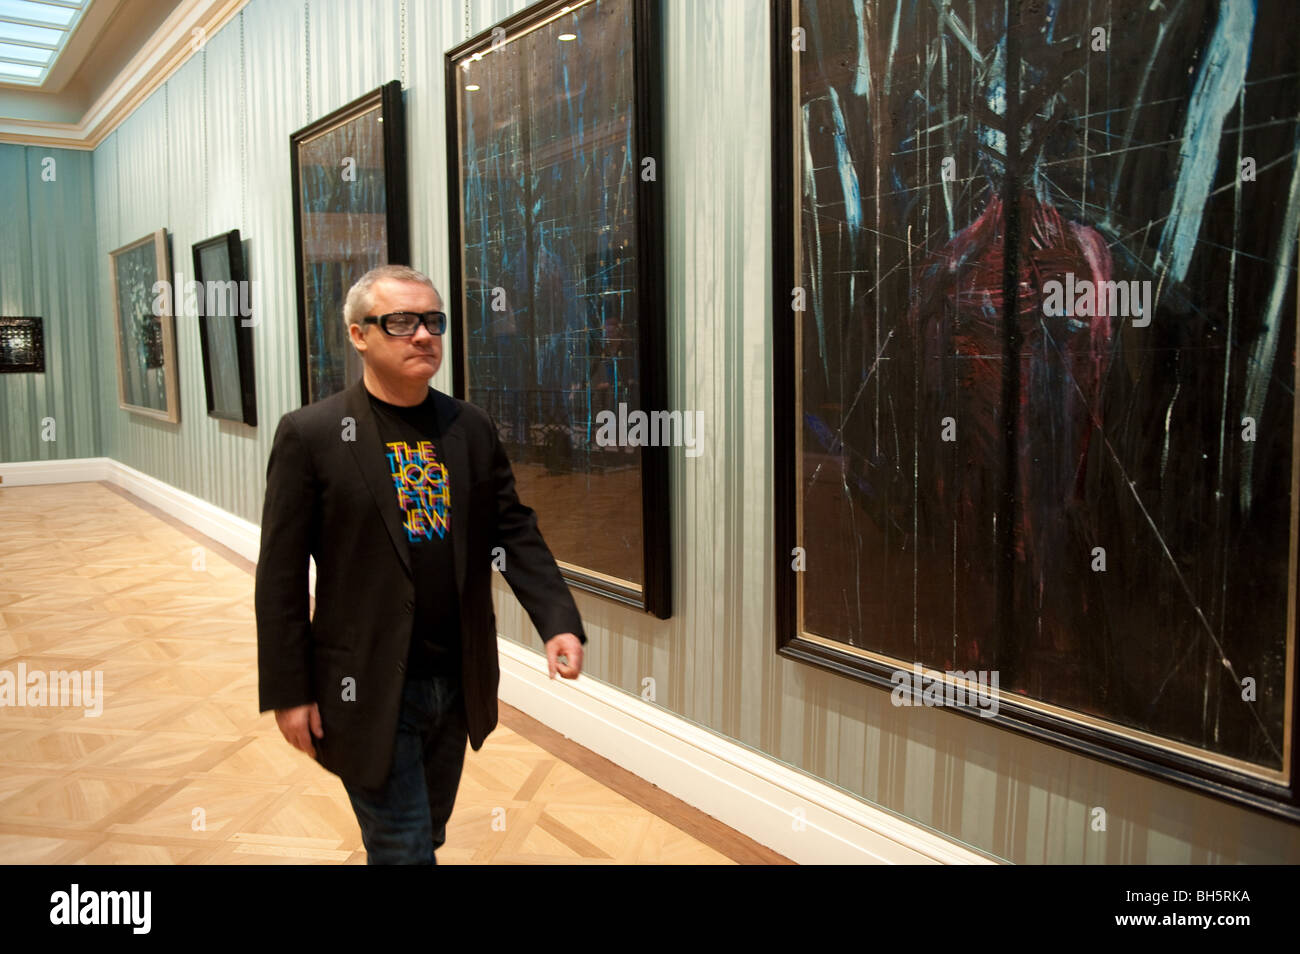 Damian Hirst and some of his work - Stock Image